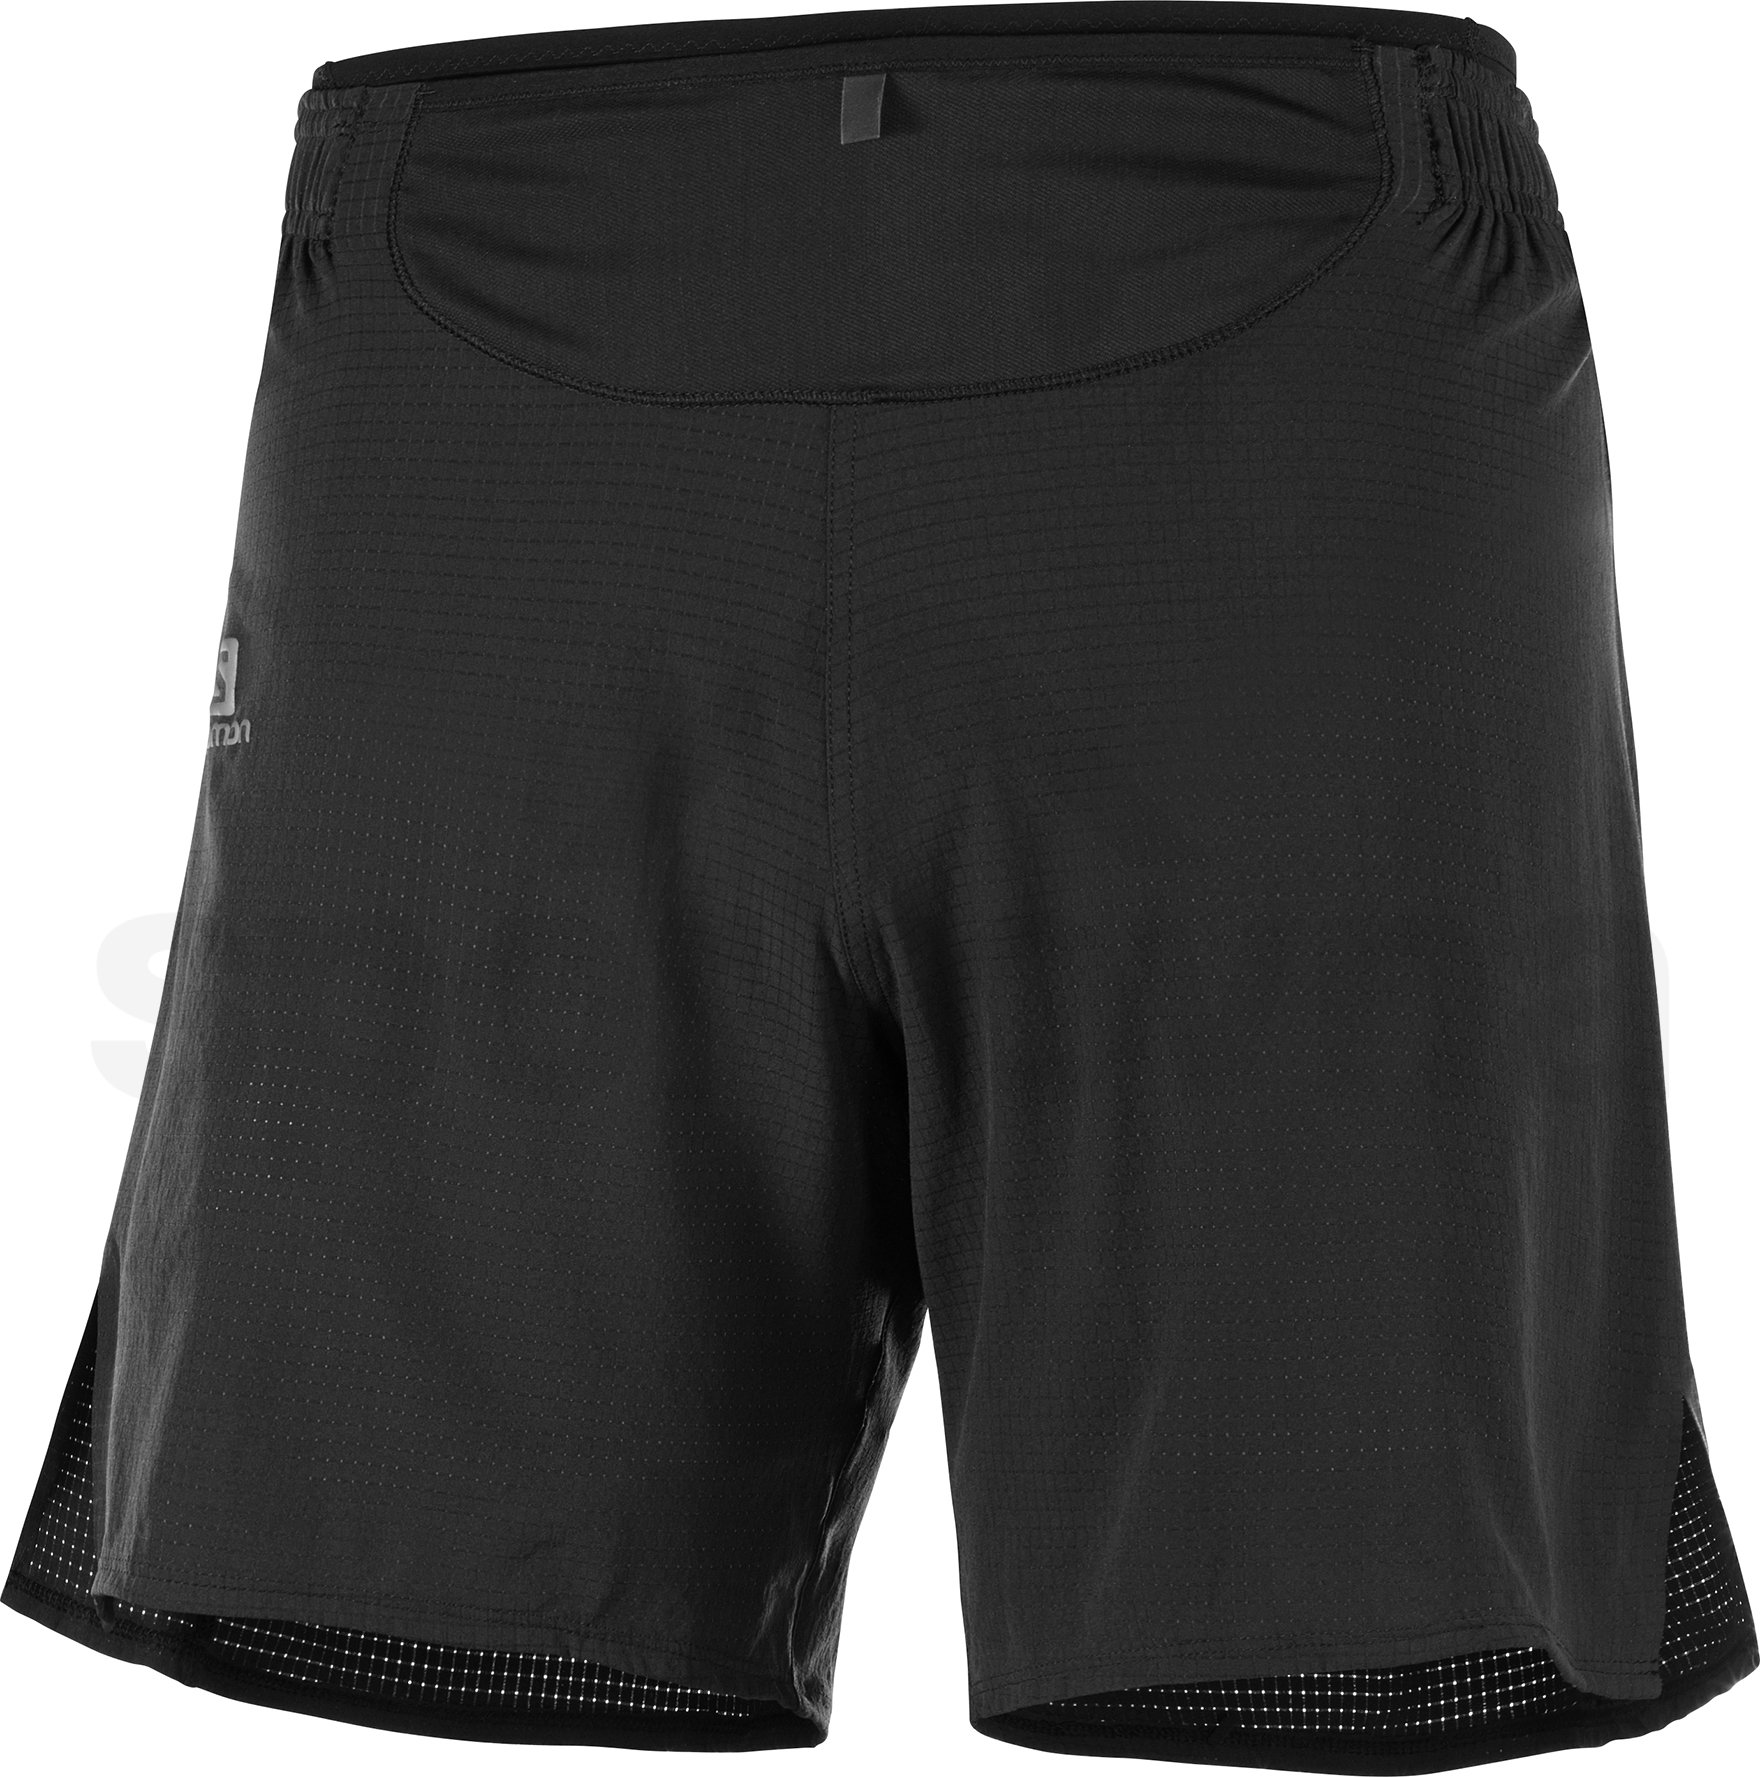 LC1045300_0_m_senseshort_black_run.jpg.originaln